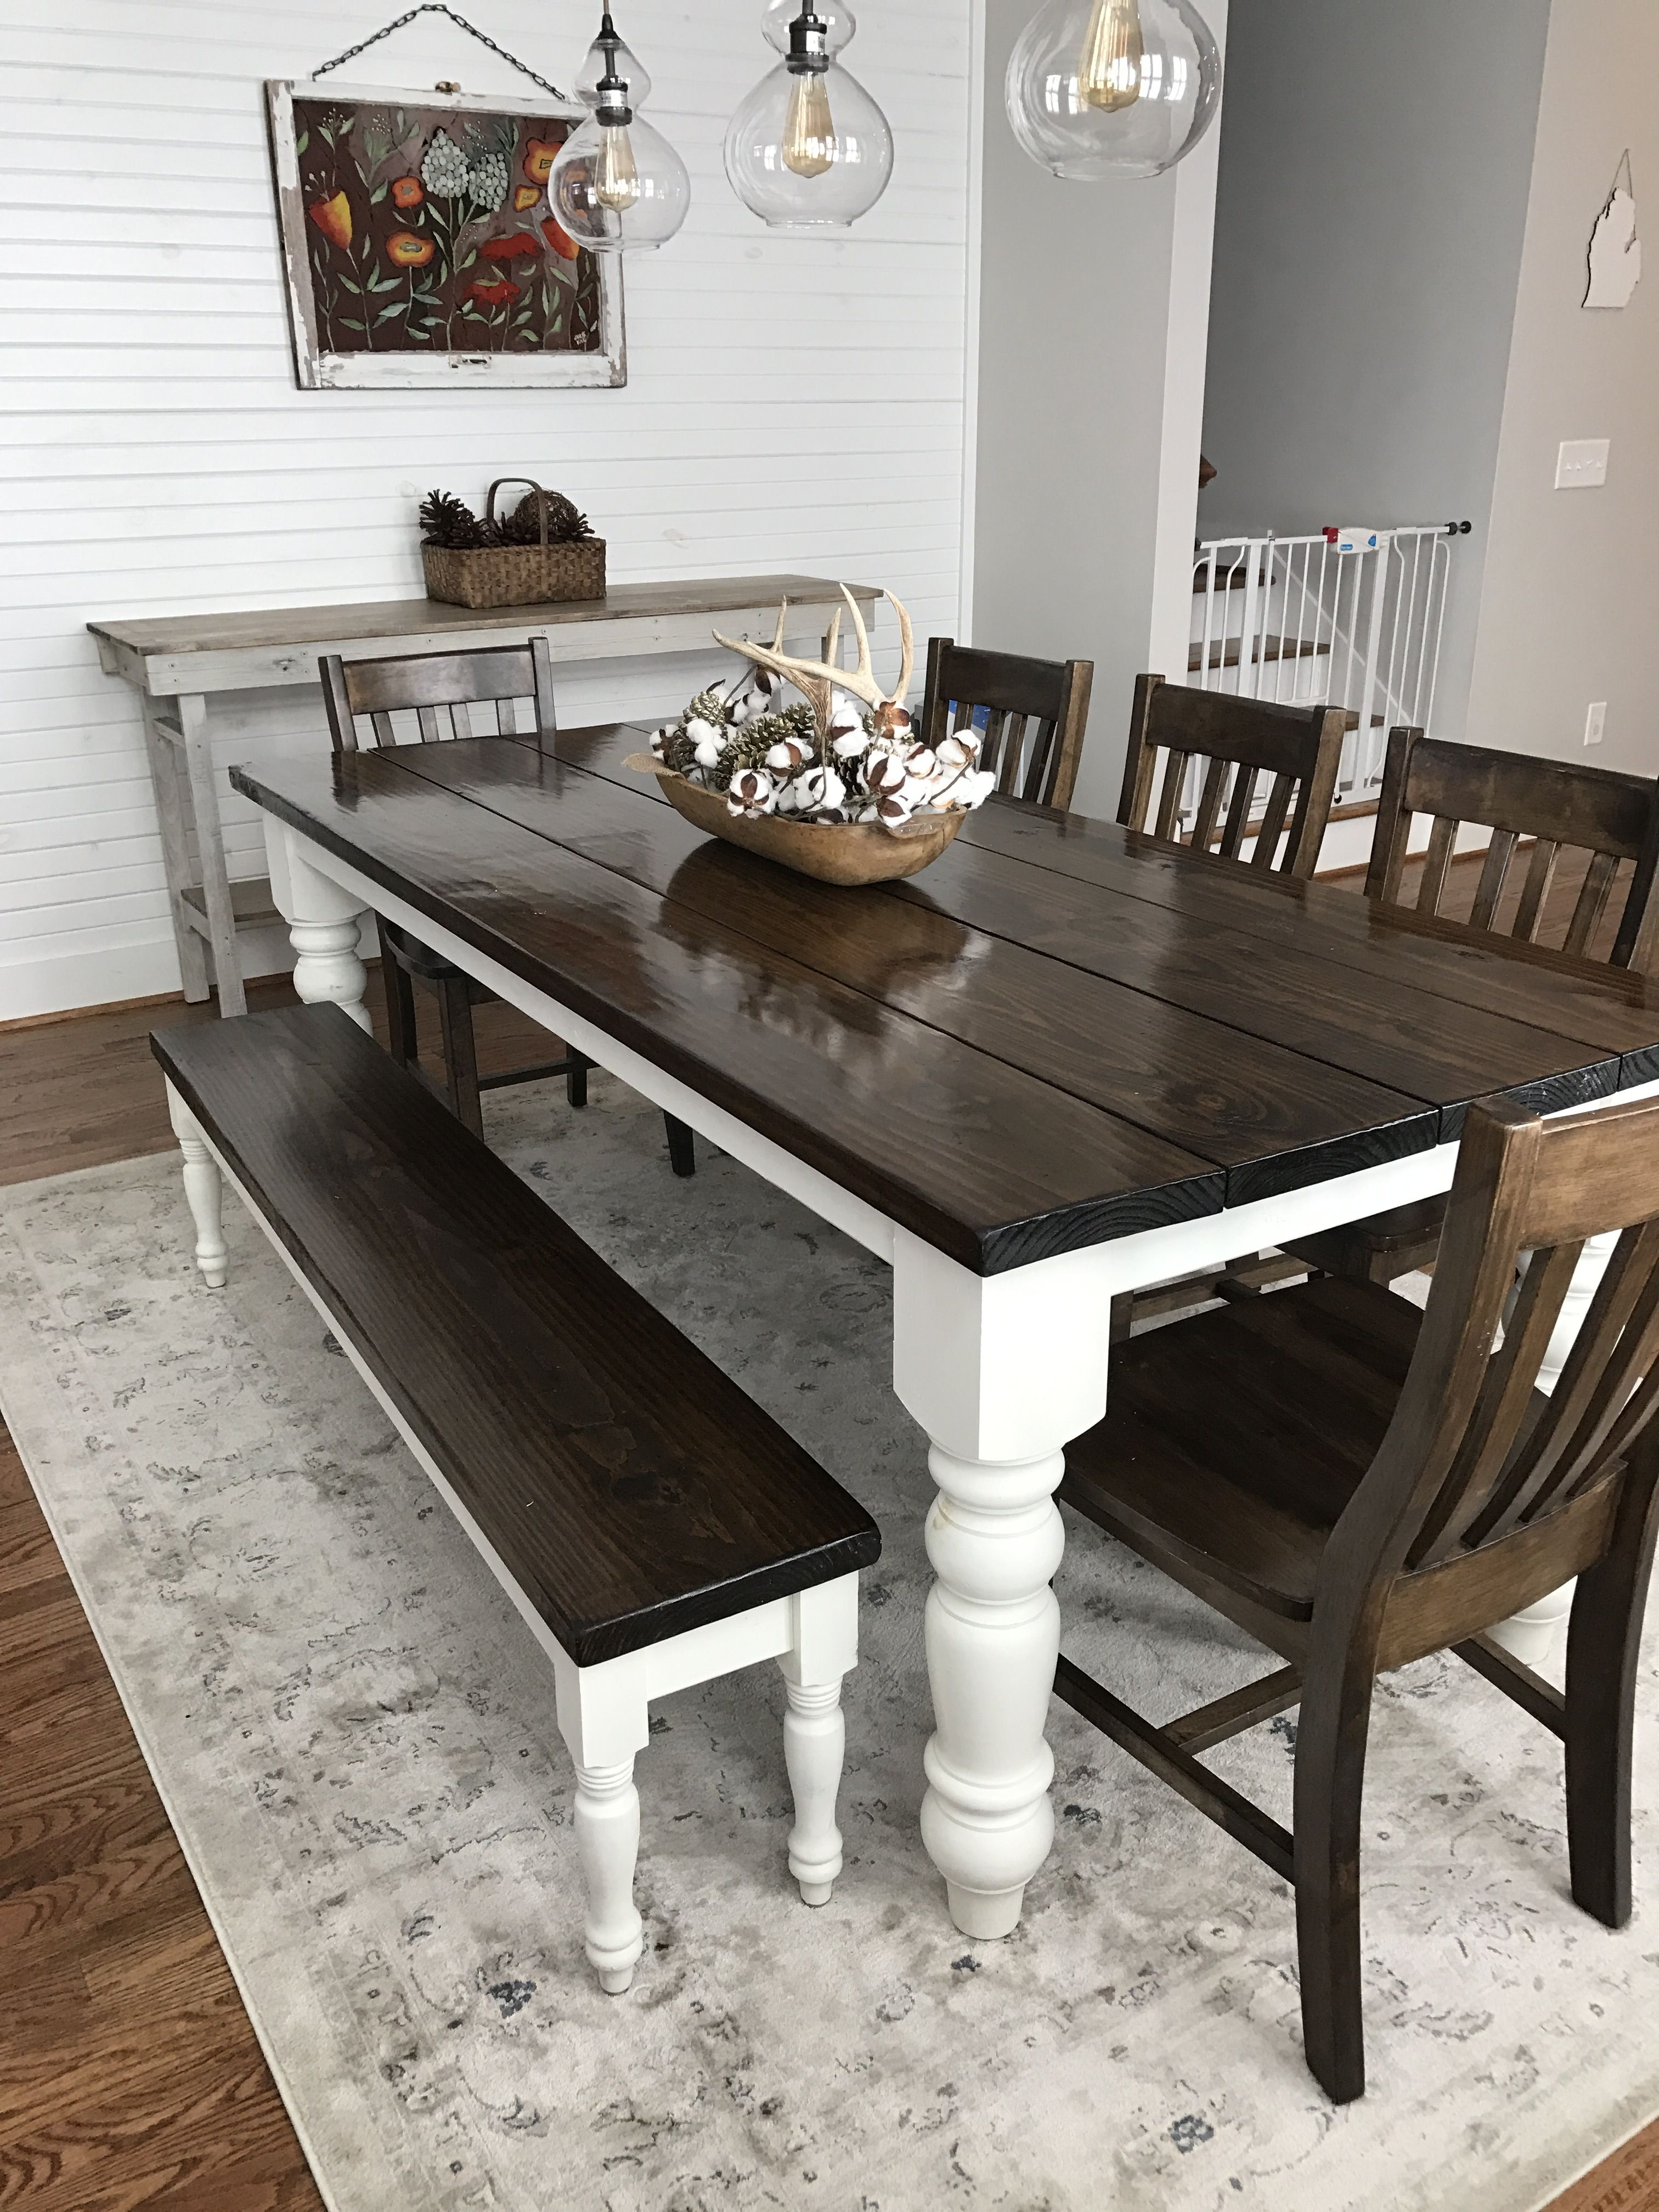 Baluster Turned Leg Table in home Pinterest Traditional